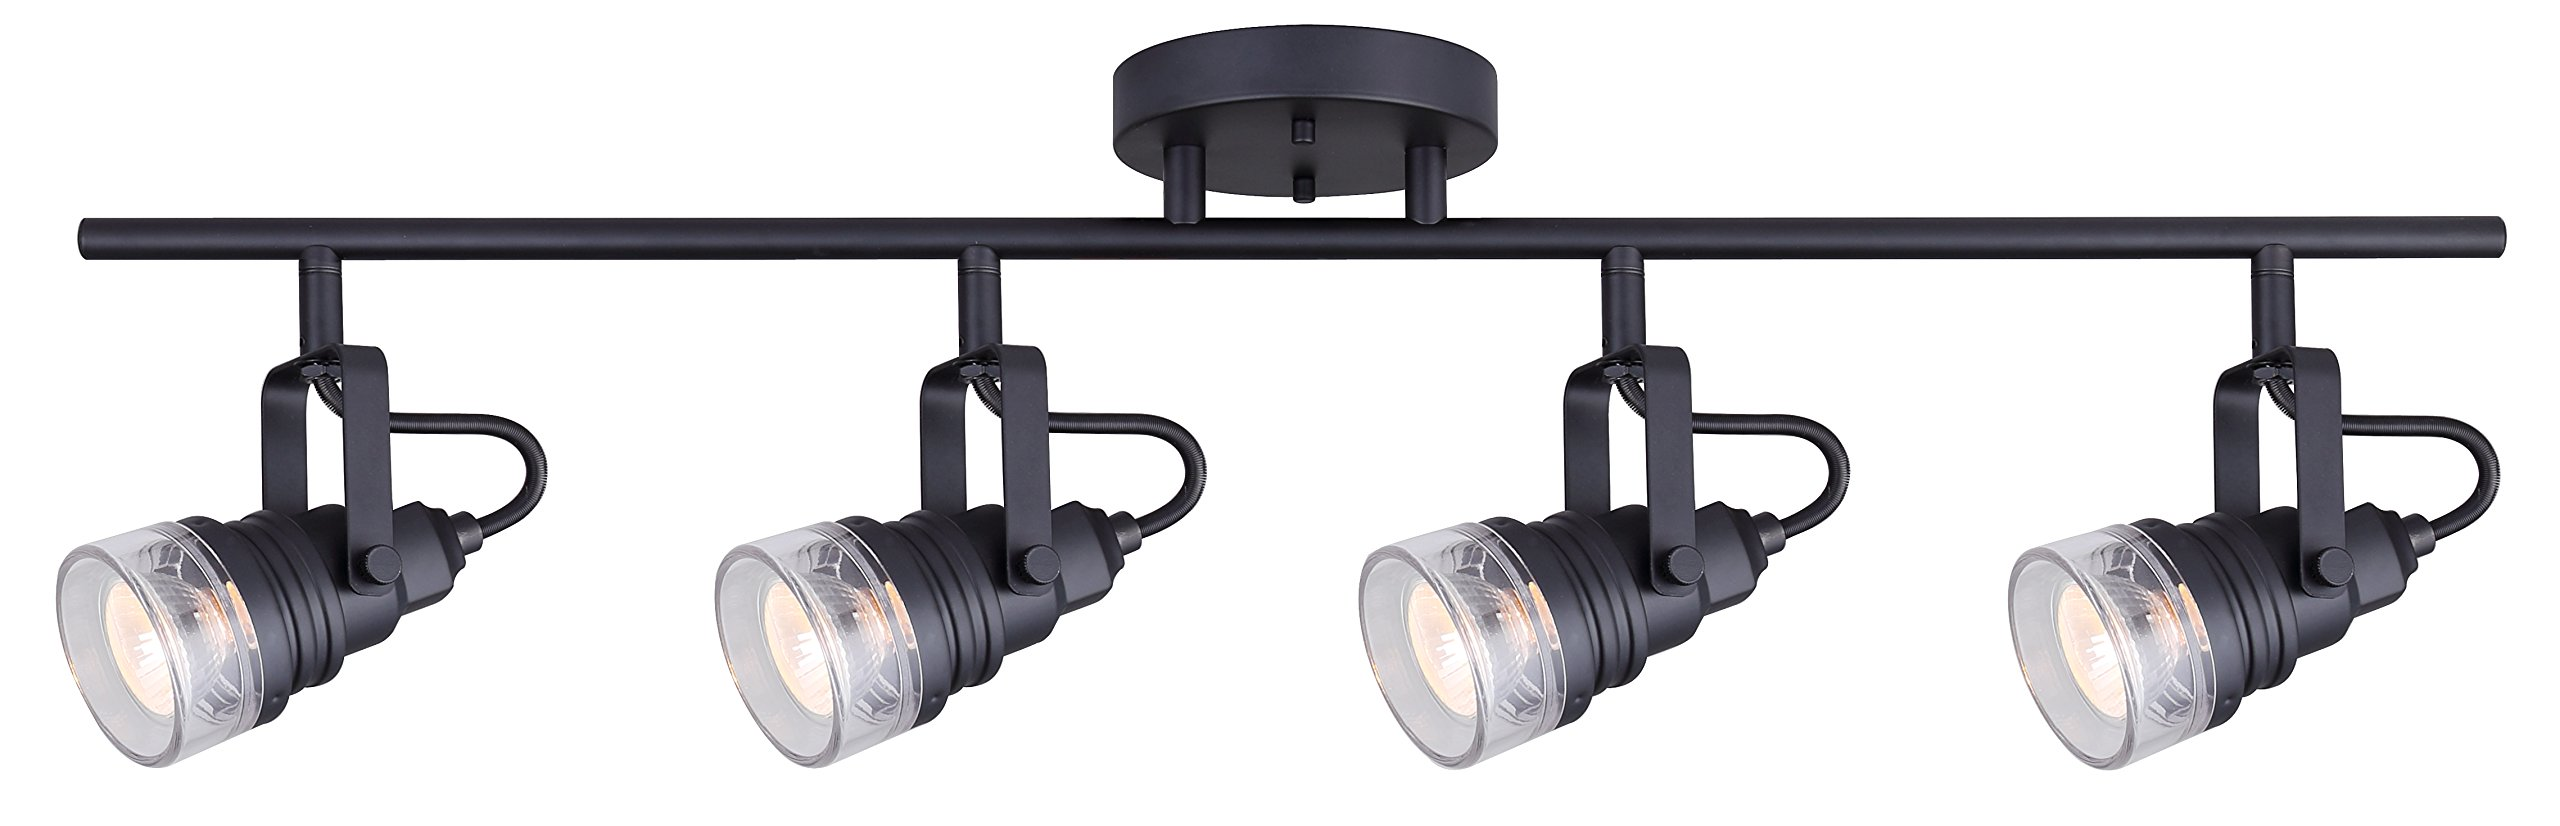 Canarn Brock 4 Light Track Light with Adjustable Heads and Clear Glass - Matte Black - Easy Connect Included